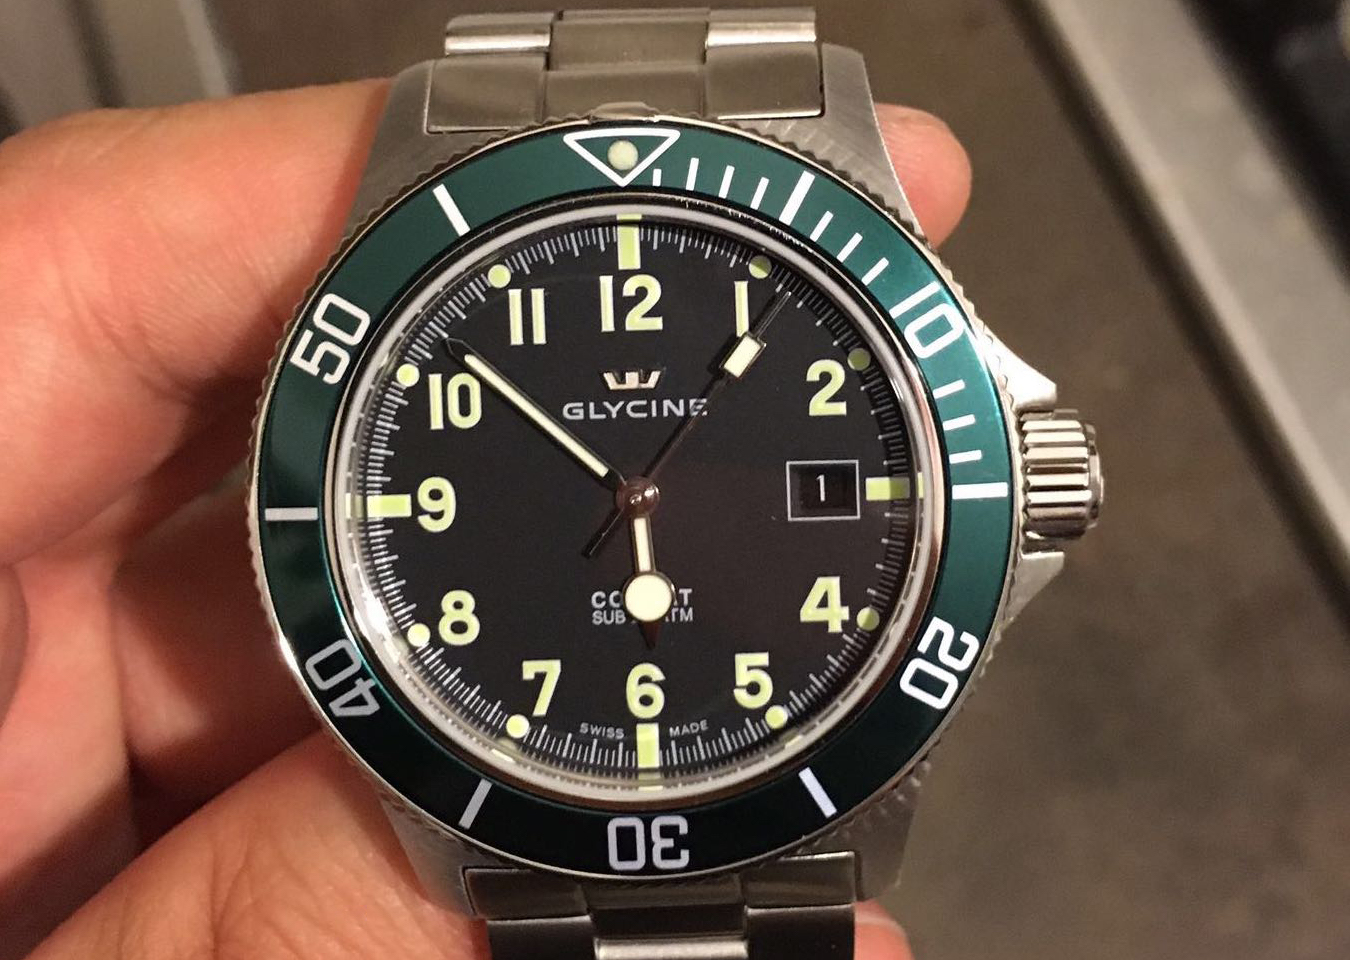 Glycine Combat Sub Watch Review - WatchReviewBlog